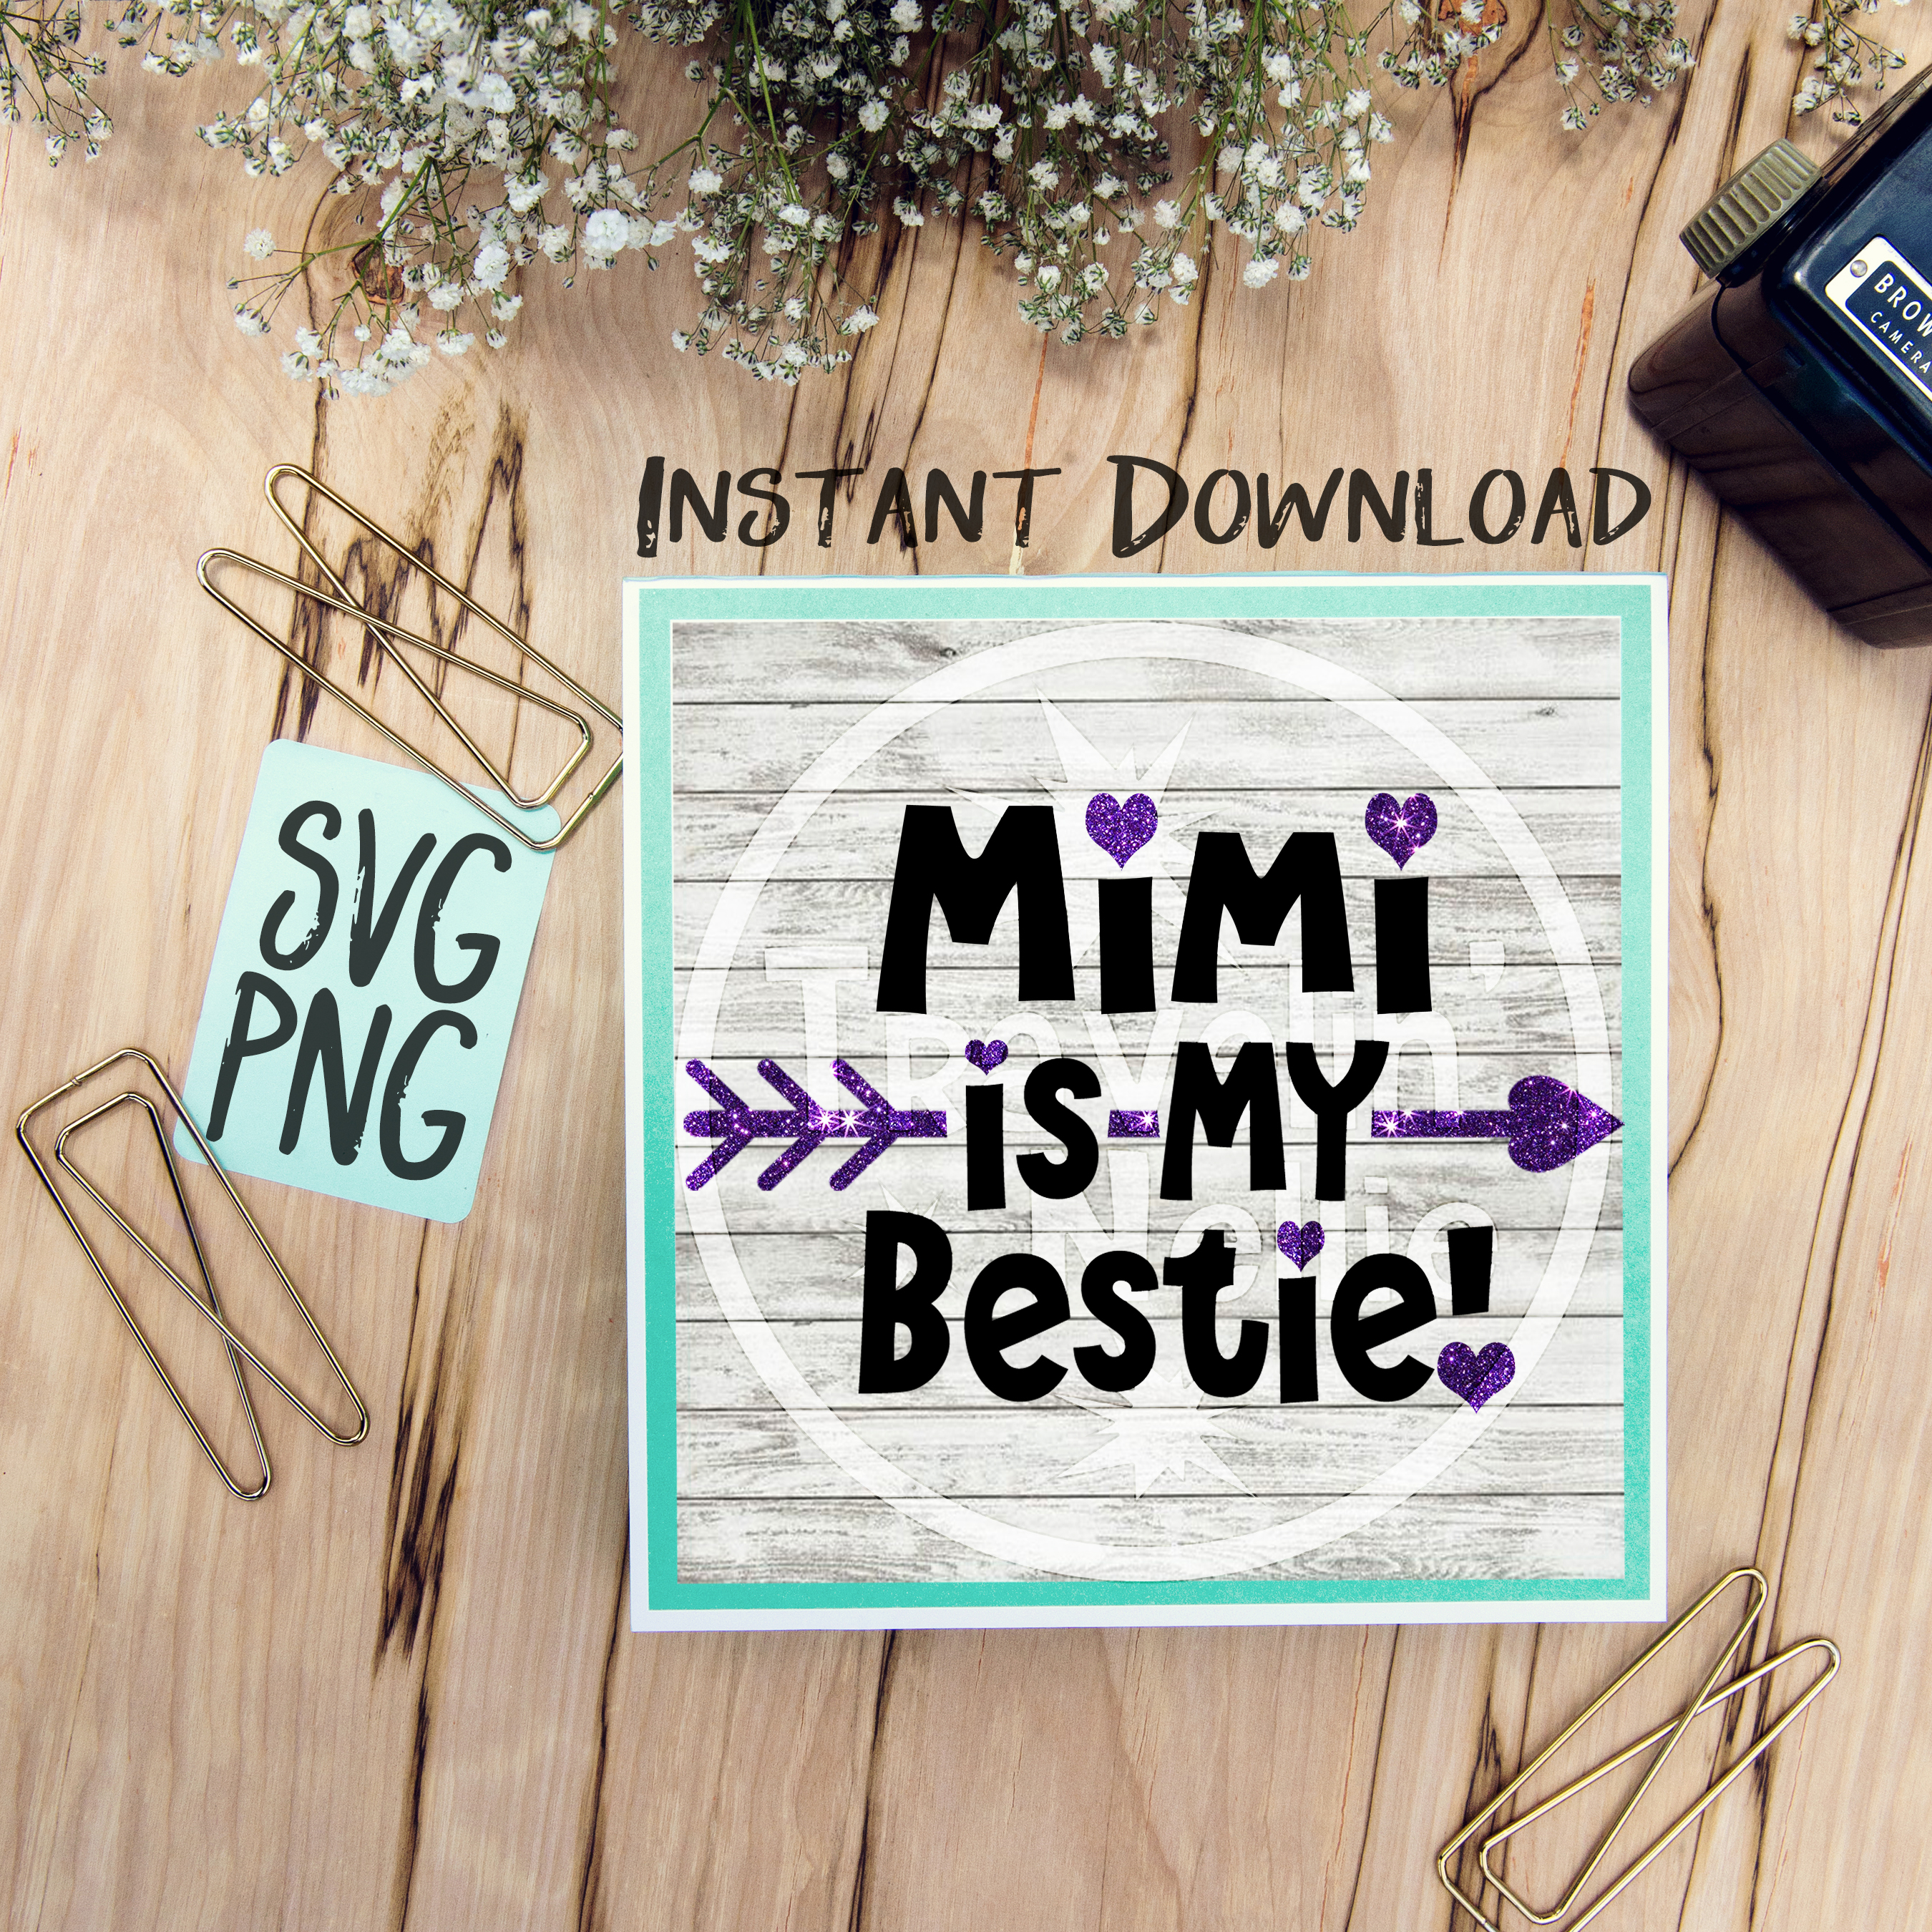 Mimi Is My Bestie SVG PNG Image Design for Cut Machines Print DIY Design Brother Cricut Cameo Cutout  example image 1